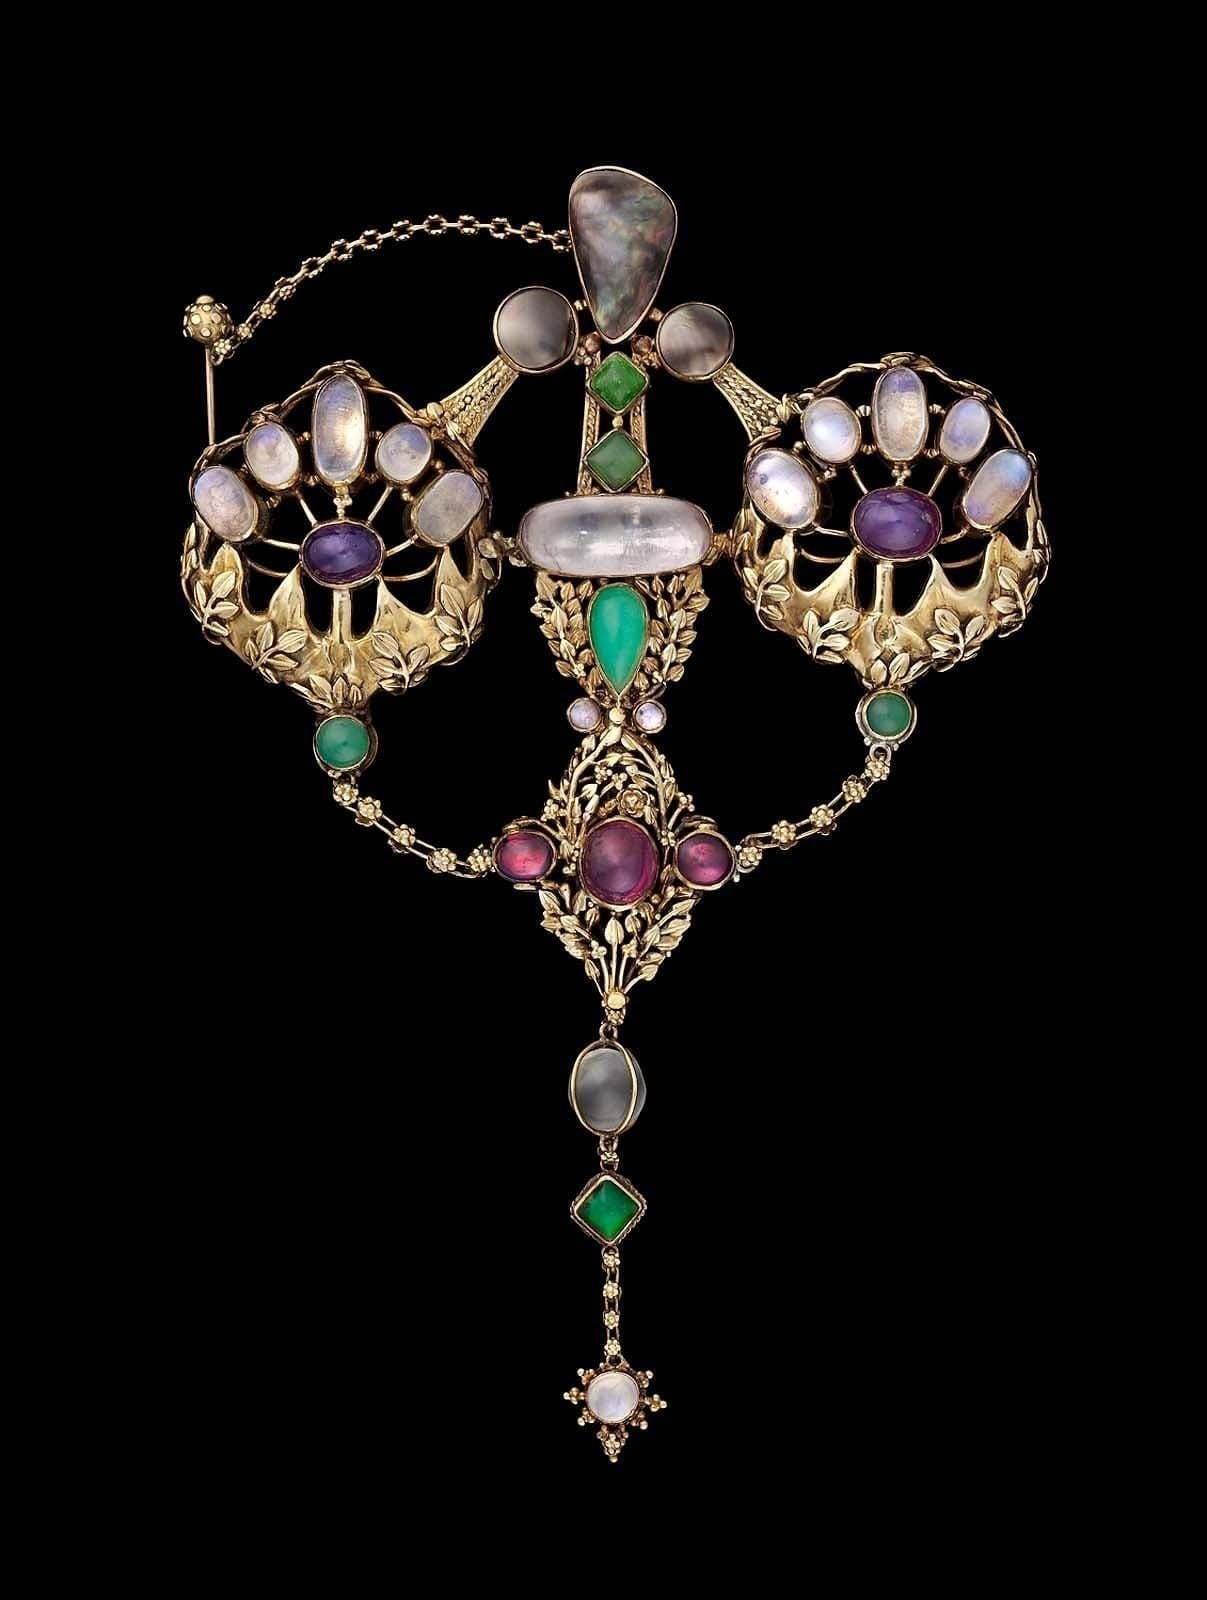 Art Nouveau Movement Supporting Arts & Crafts during Nineteenth-century Europe